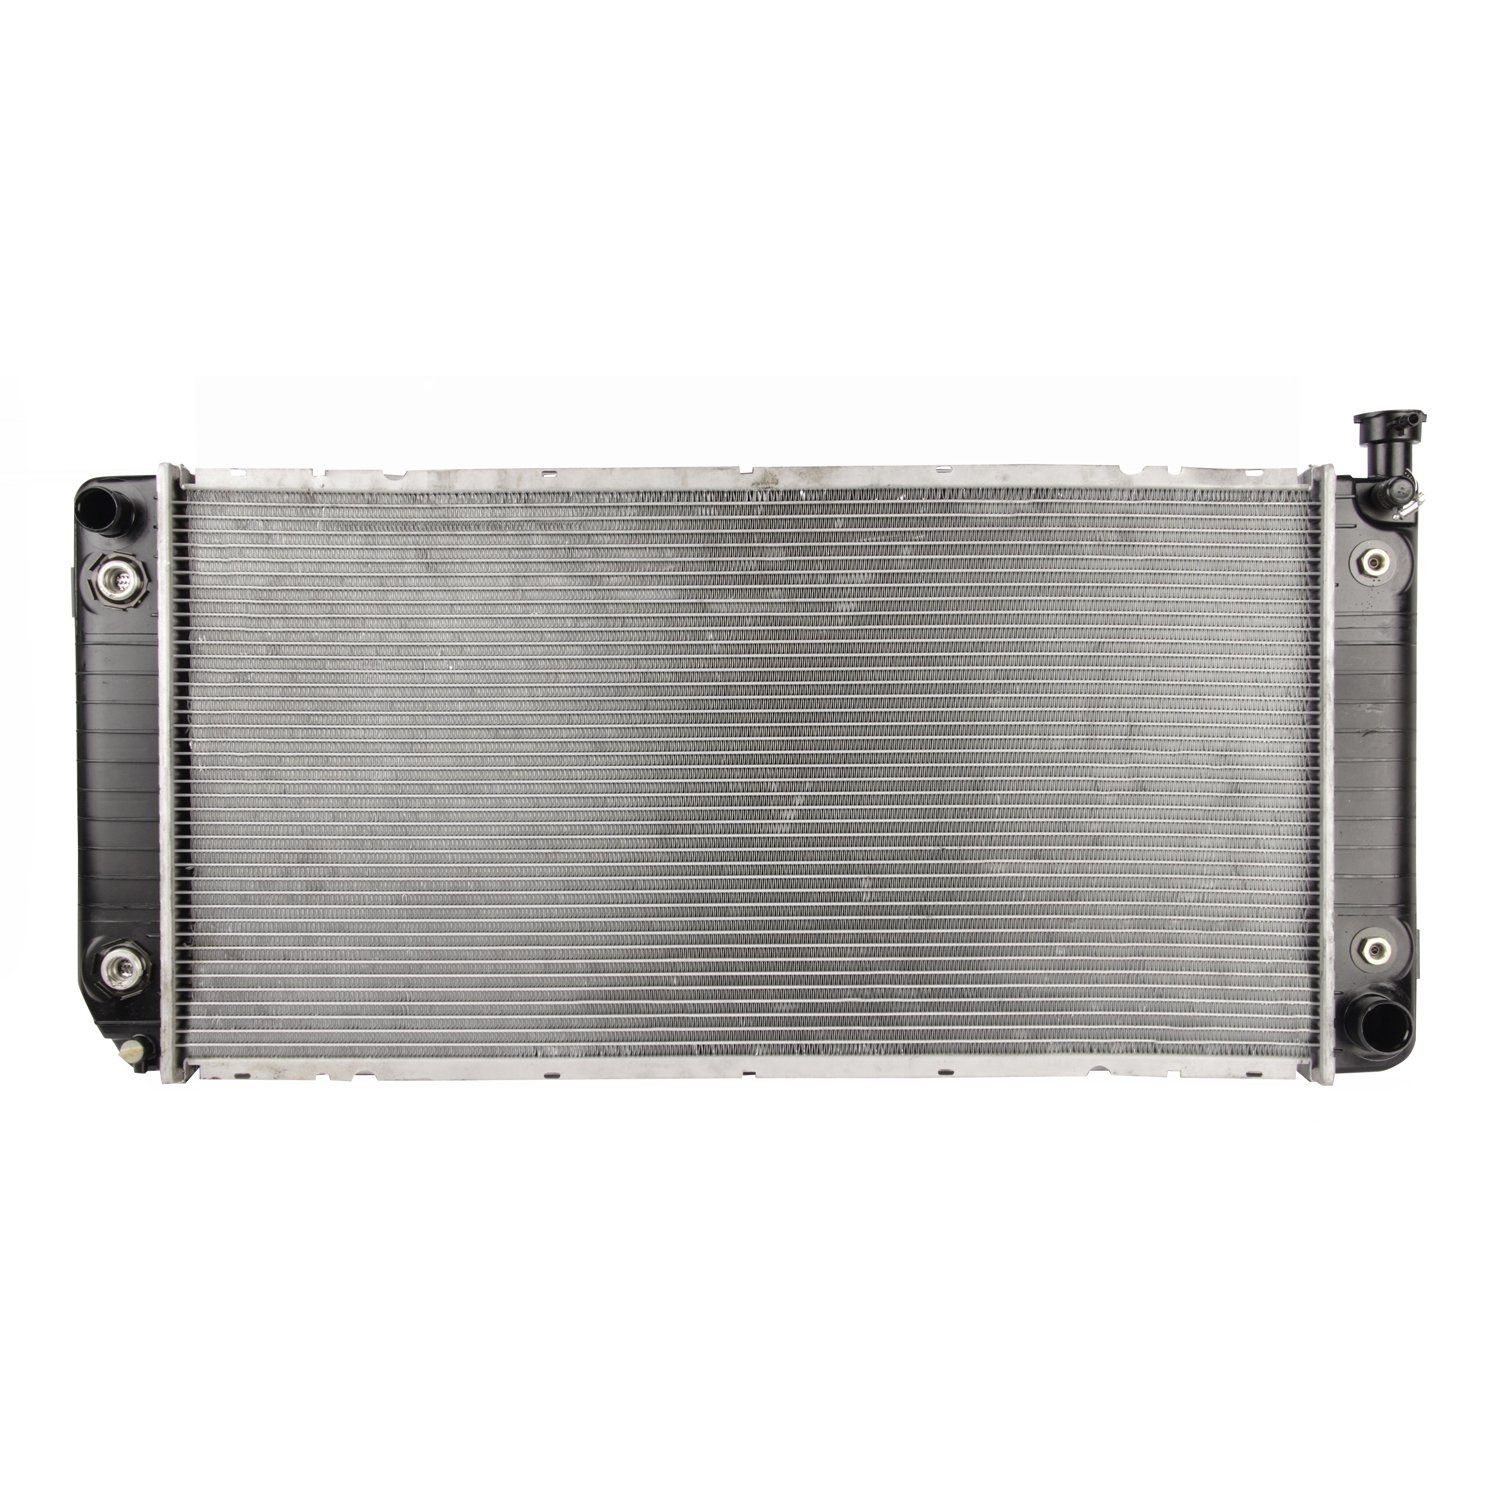 Spectra Premium CU1693 Complete Radiator for General Motors